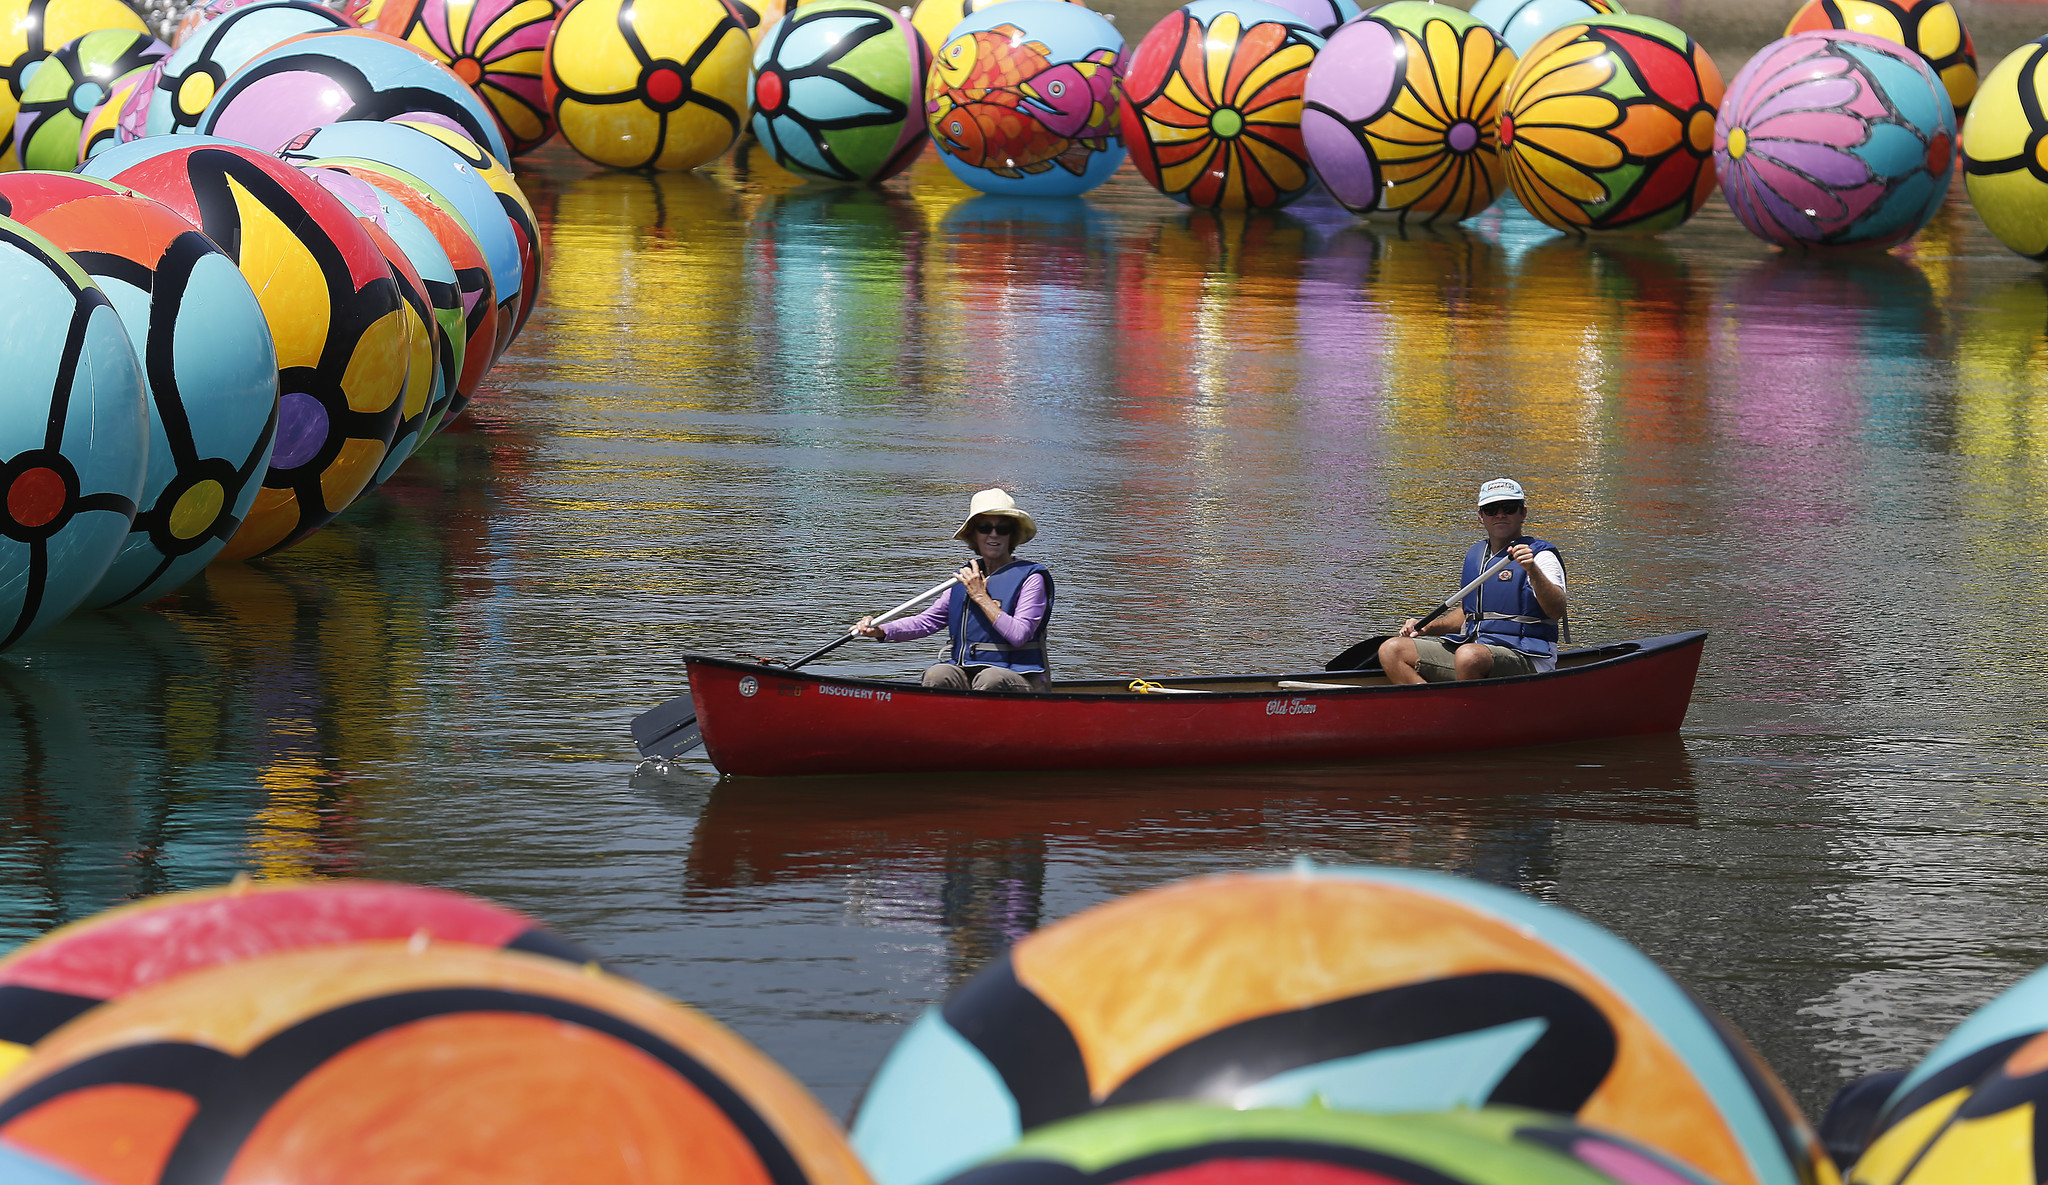 la-et-cam-charitable-art-project-filling-macarthur-park-lake-with-thousands-of-colorful-spheres-20150822